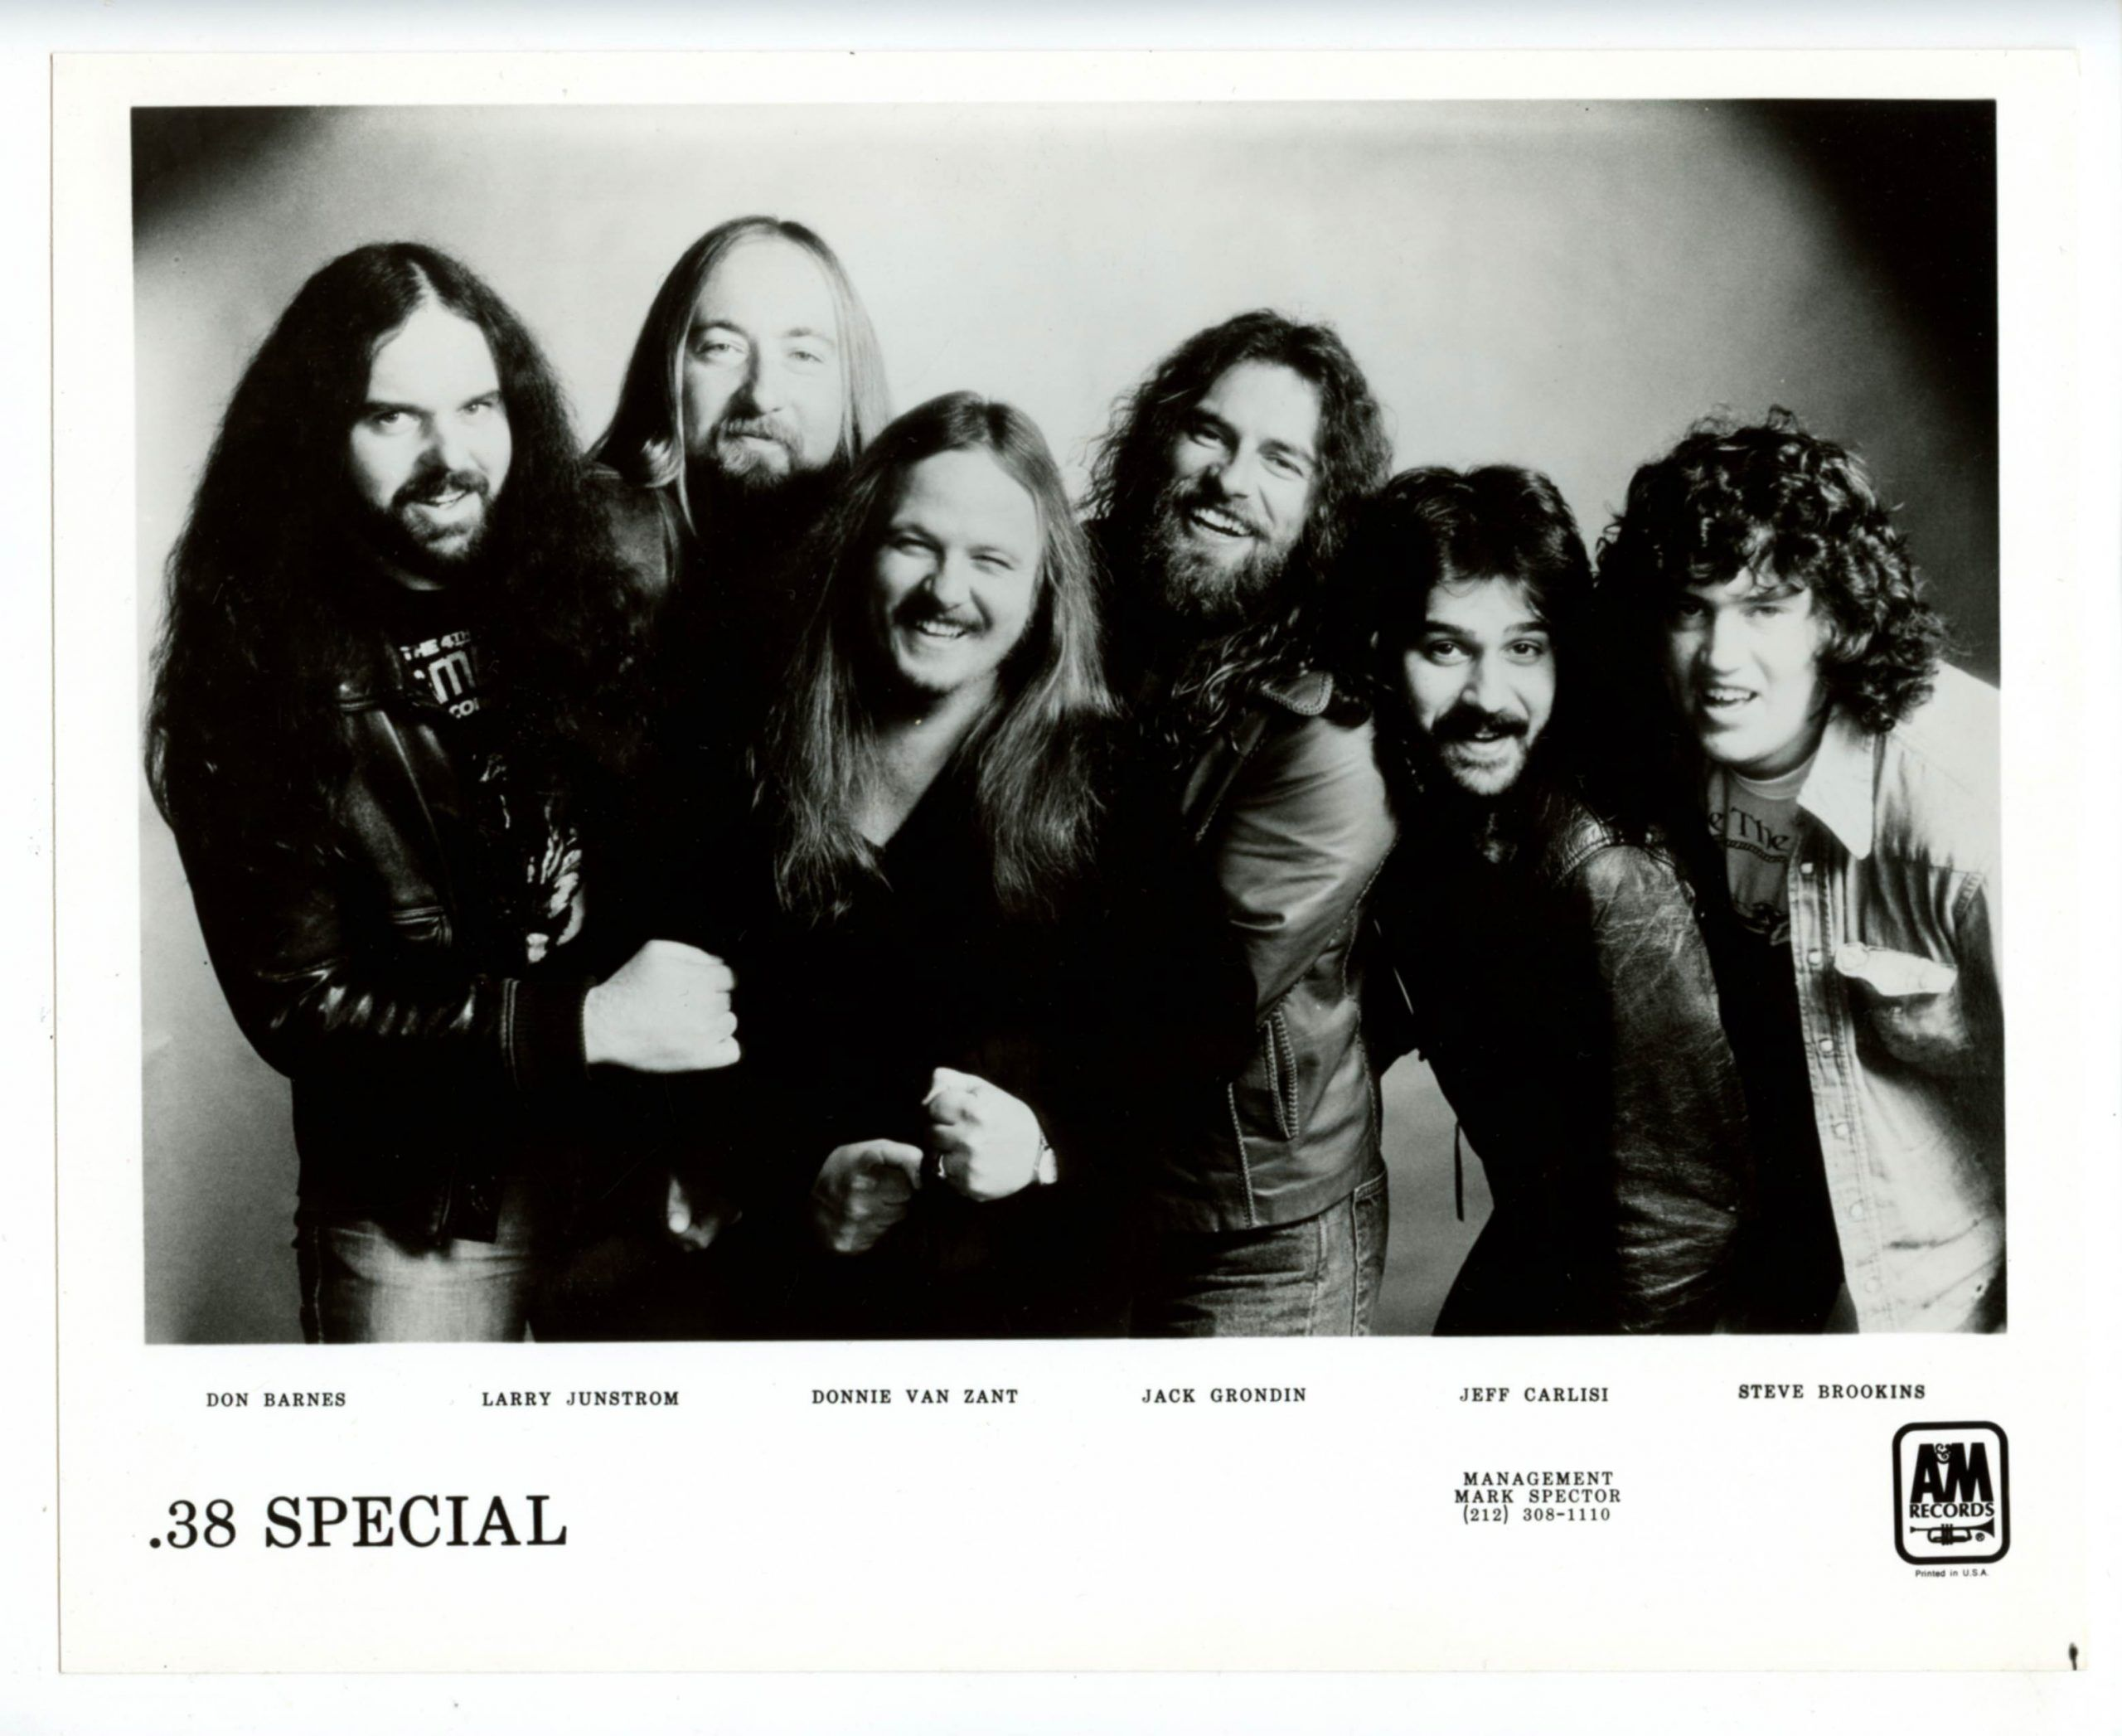 38 Special Photograph 1970s A&M Records